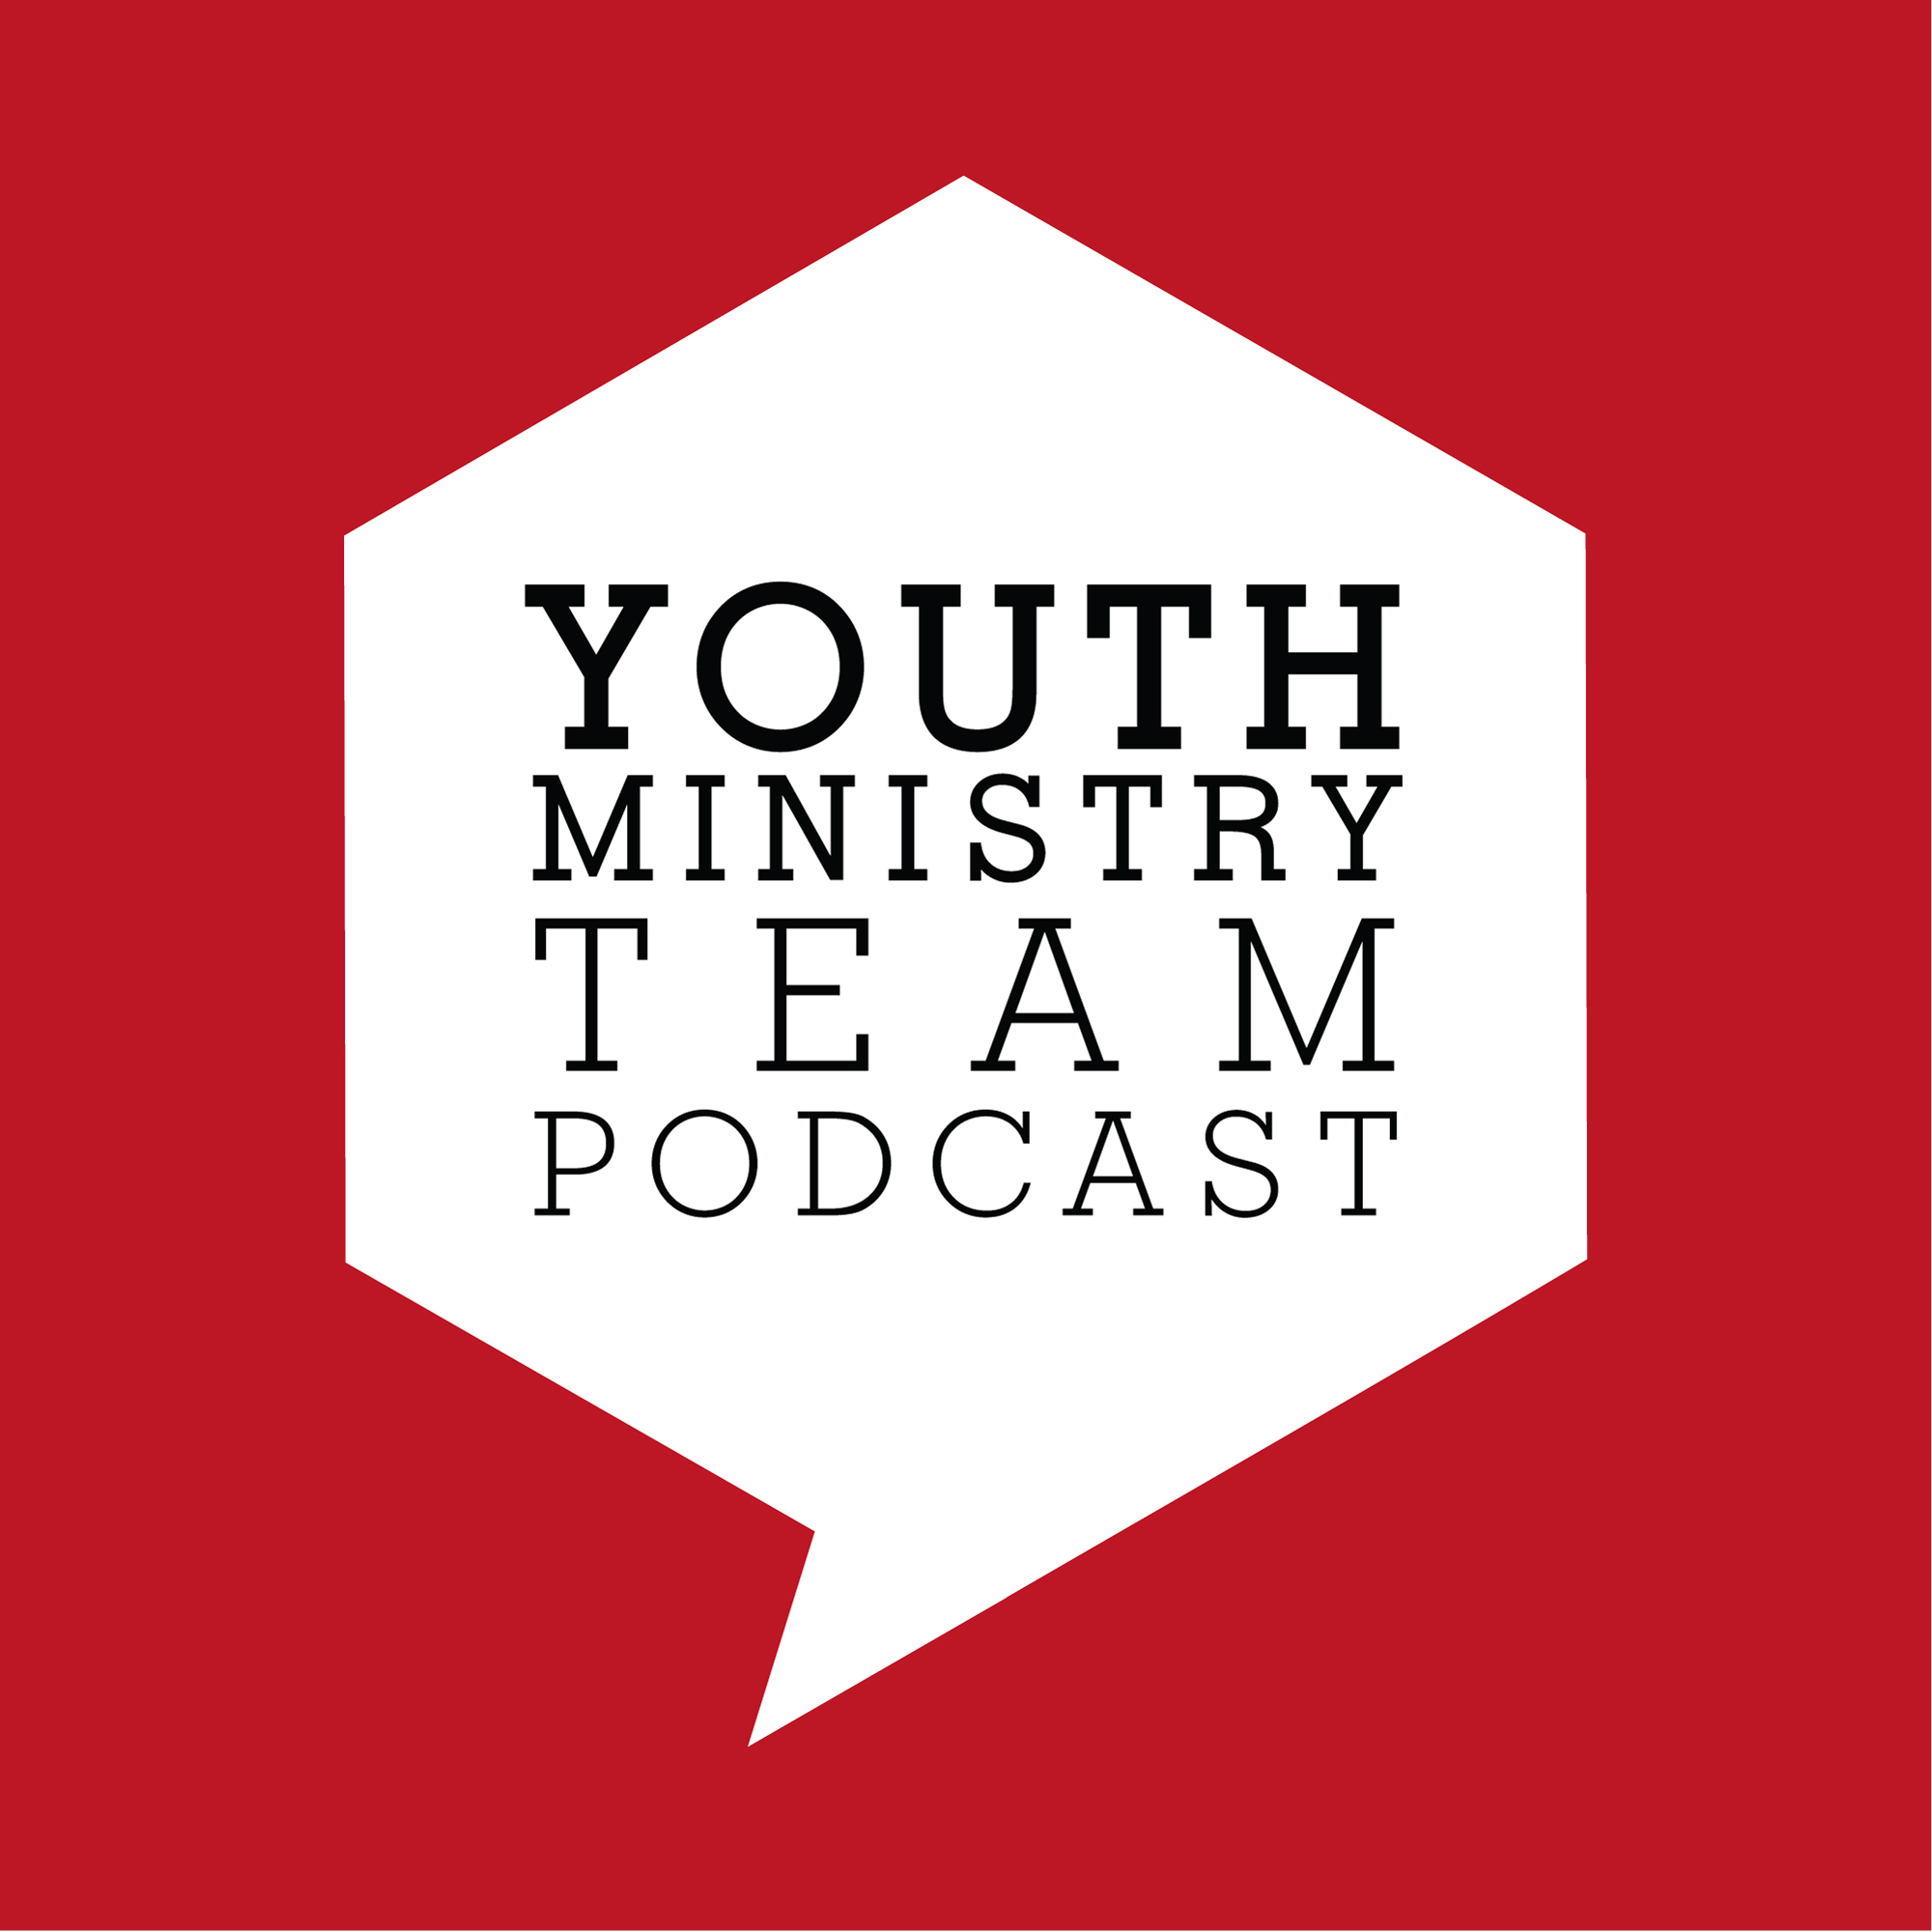 Youth Ministry Team Podcast show art